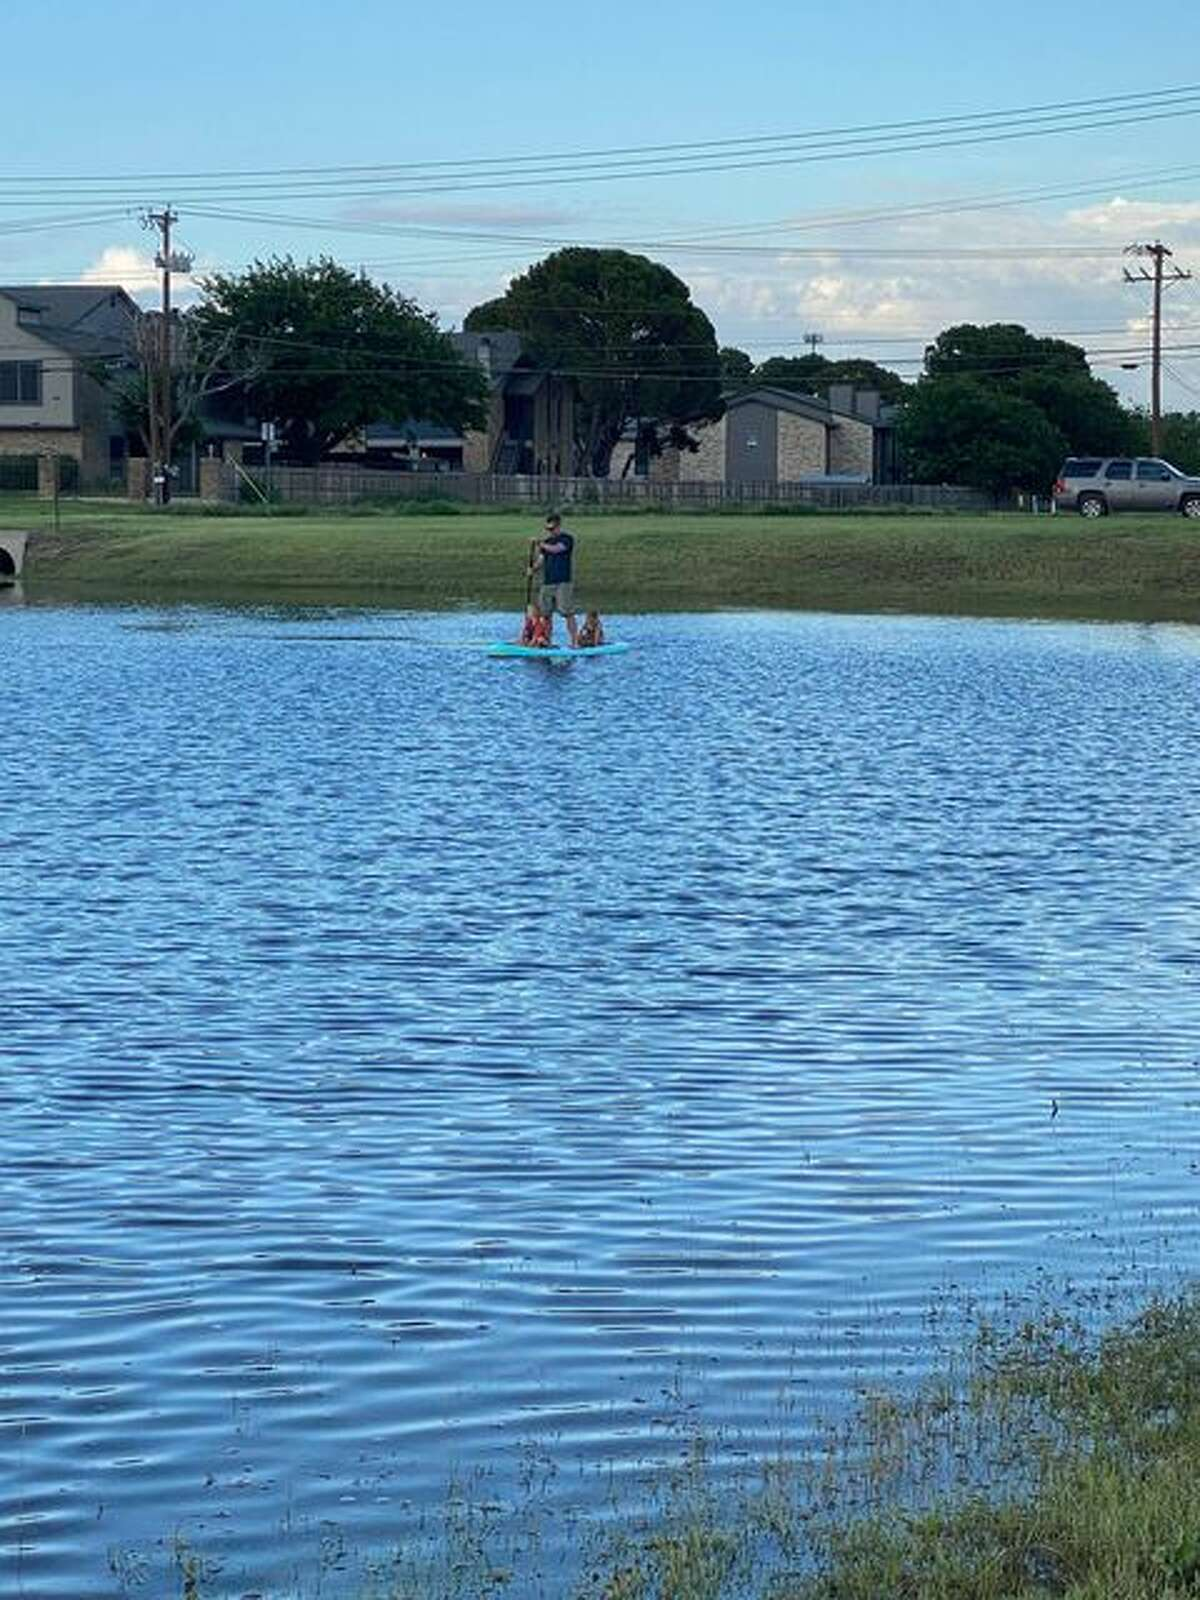 Midlanders took advantage of a flooded drainage ditch across from Bowlero after series of storms dumped several inches of rain in Midland and across parts of West Texas.